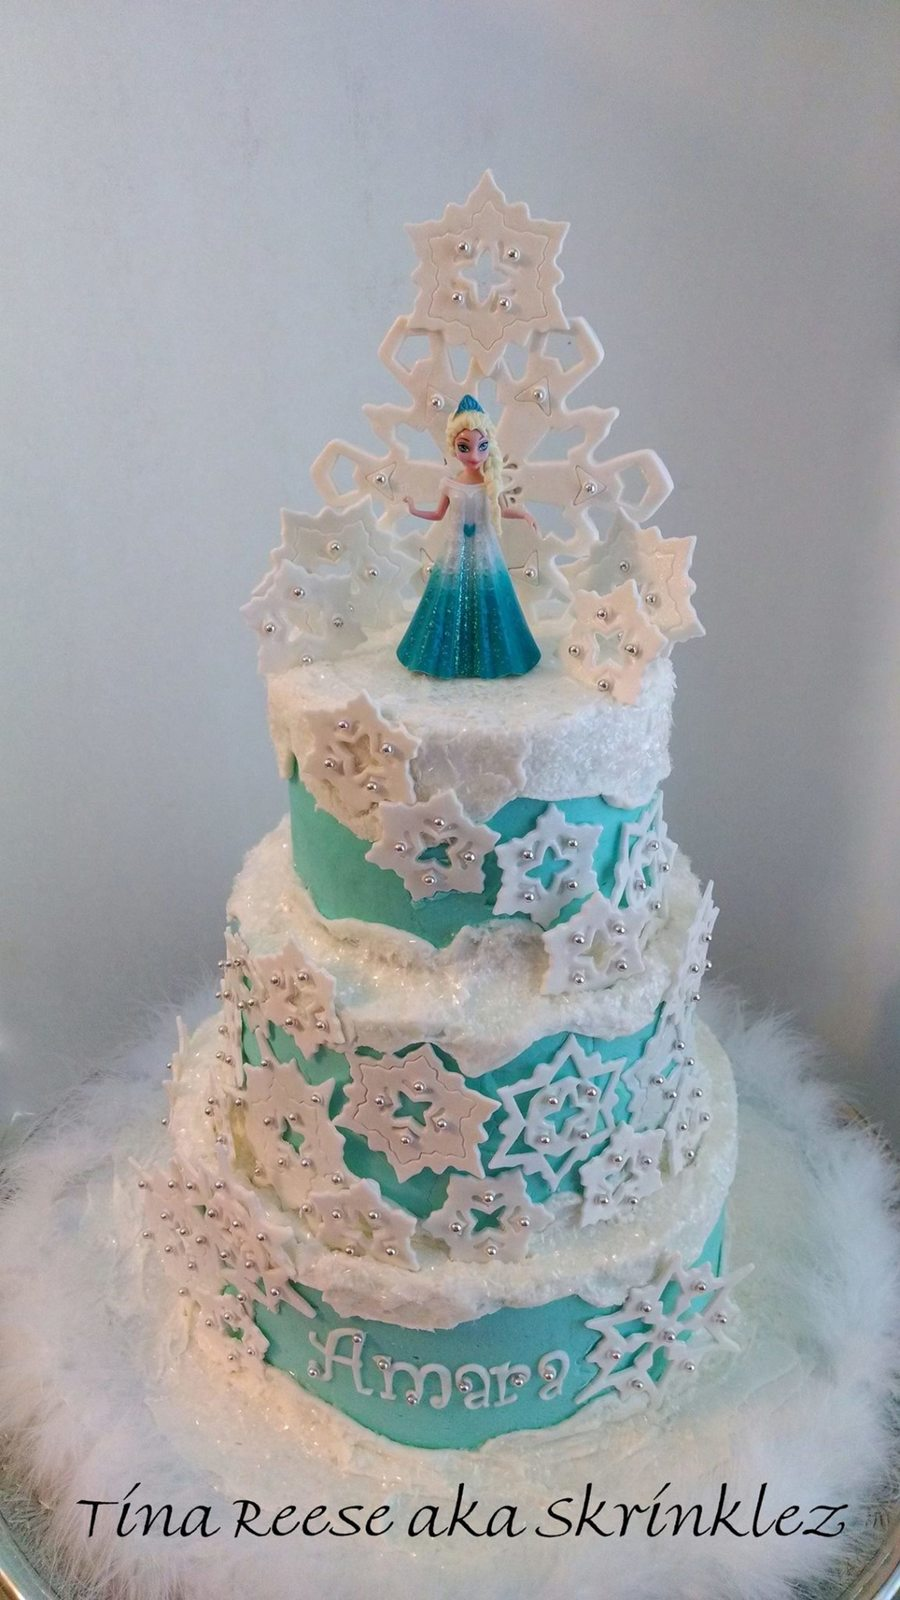 Disney's Frozen on Cake Central